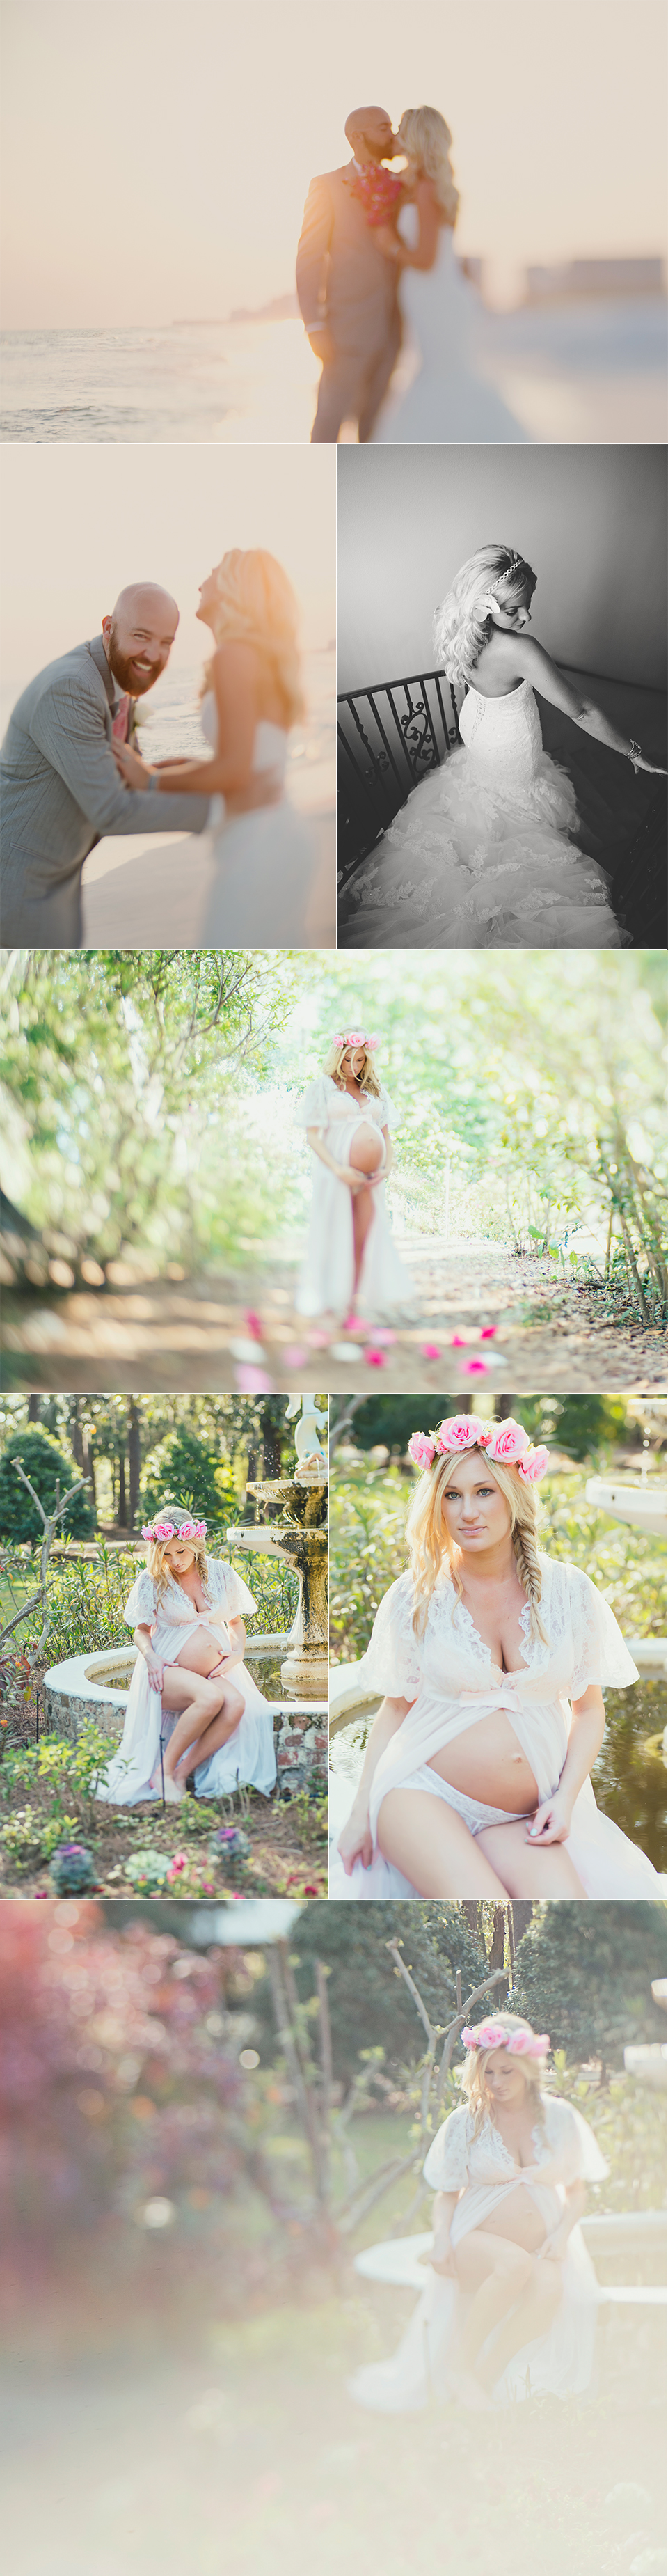 wedding and portrait photographer